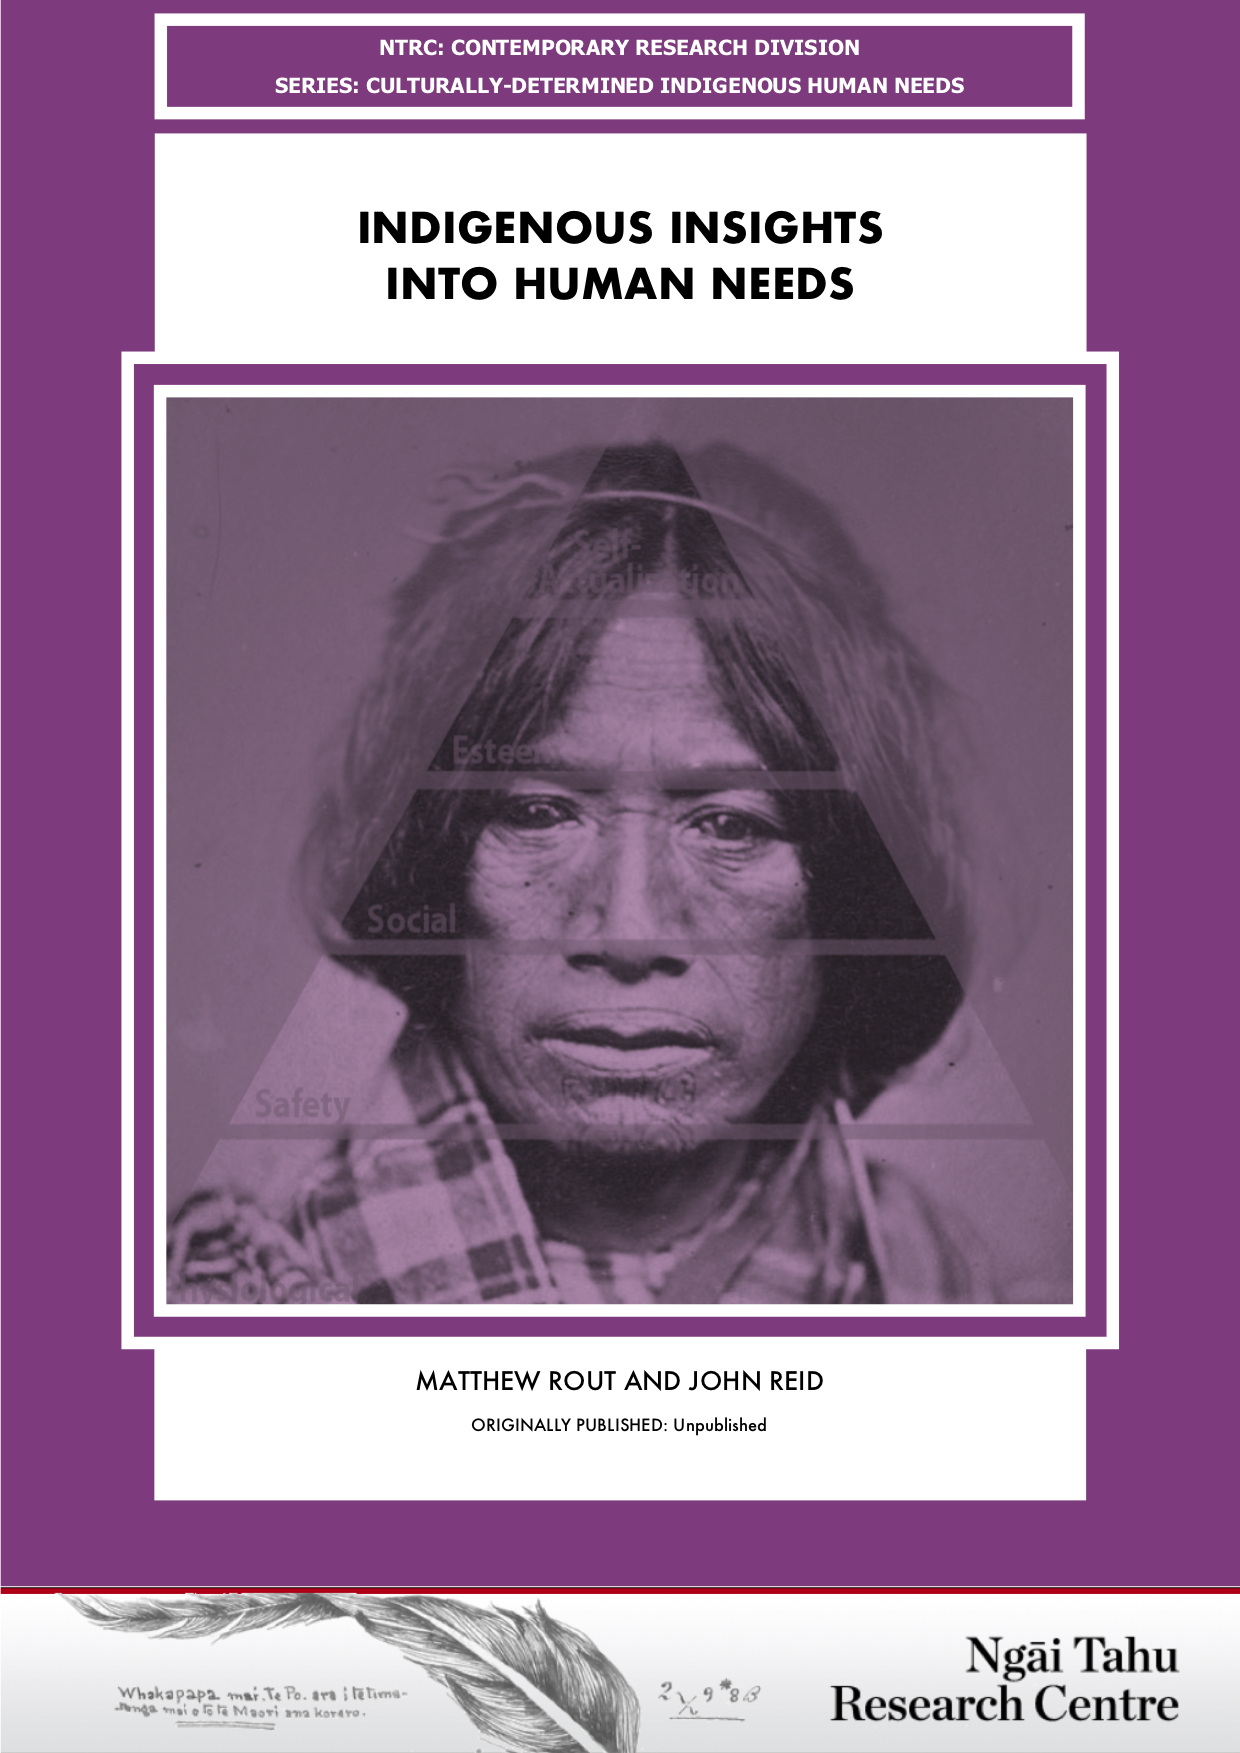 Image - Indigenous insights into human needs